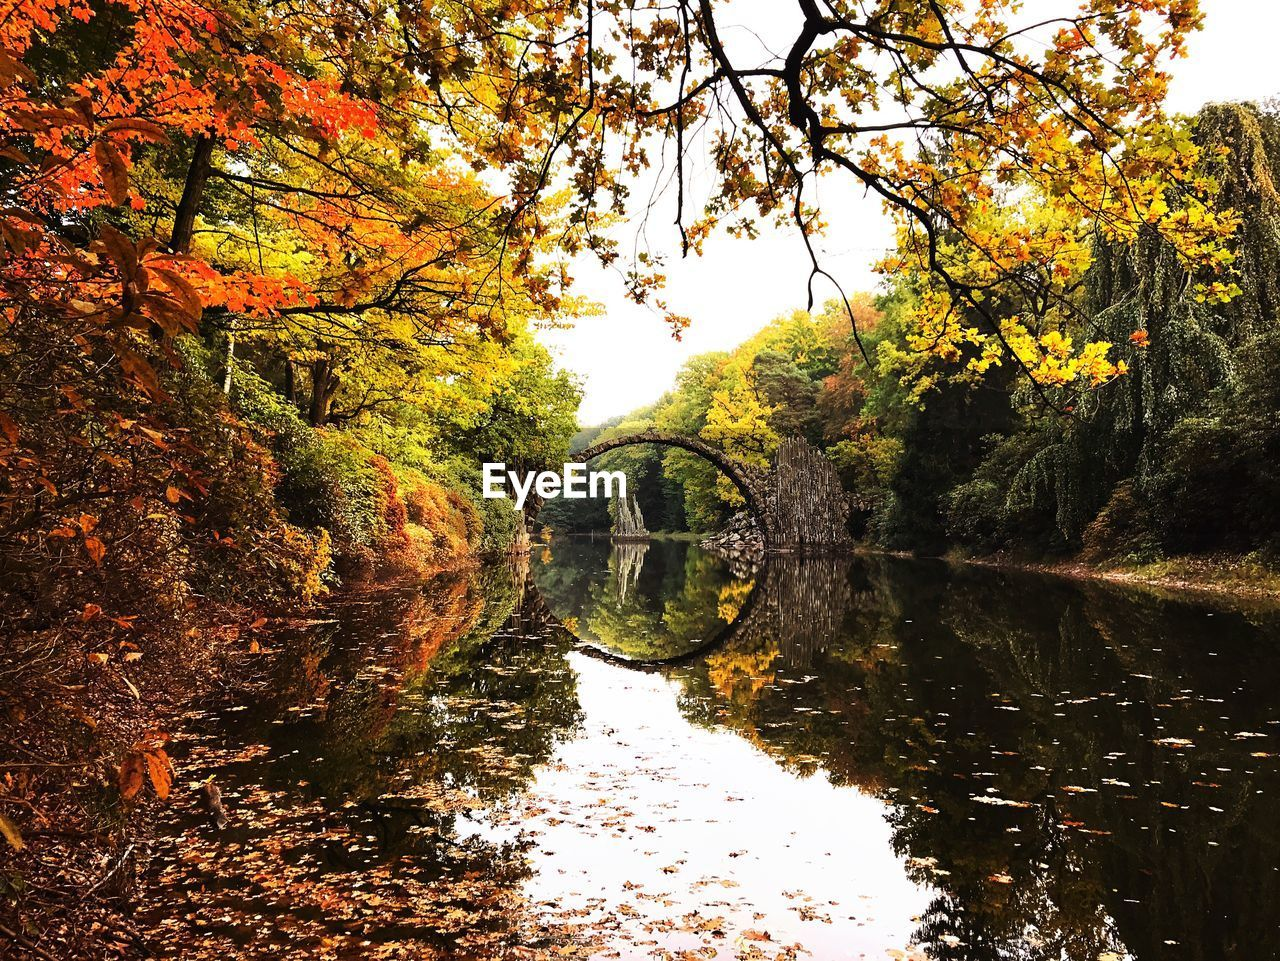 tree, reflection, autumn, nature, beauty in nature, water, tranquility, tranquil scene, scenics, change, lake, built structure, no people, leaf, outdoors, day, bridge - man made structure, architecture, travel destinations, growth, waterfront, branch, forest, sky, building exterior